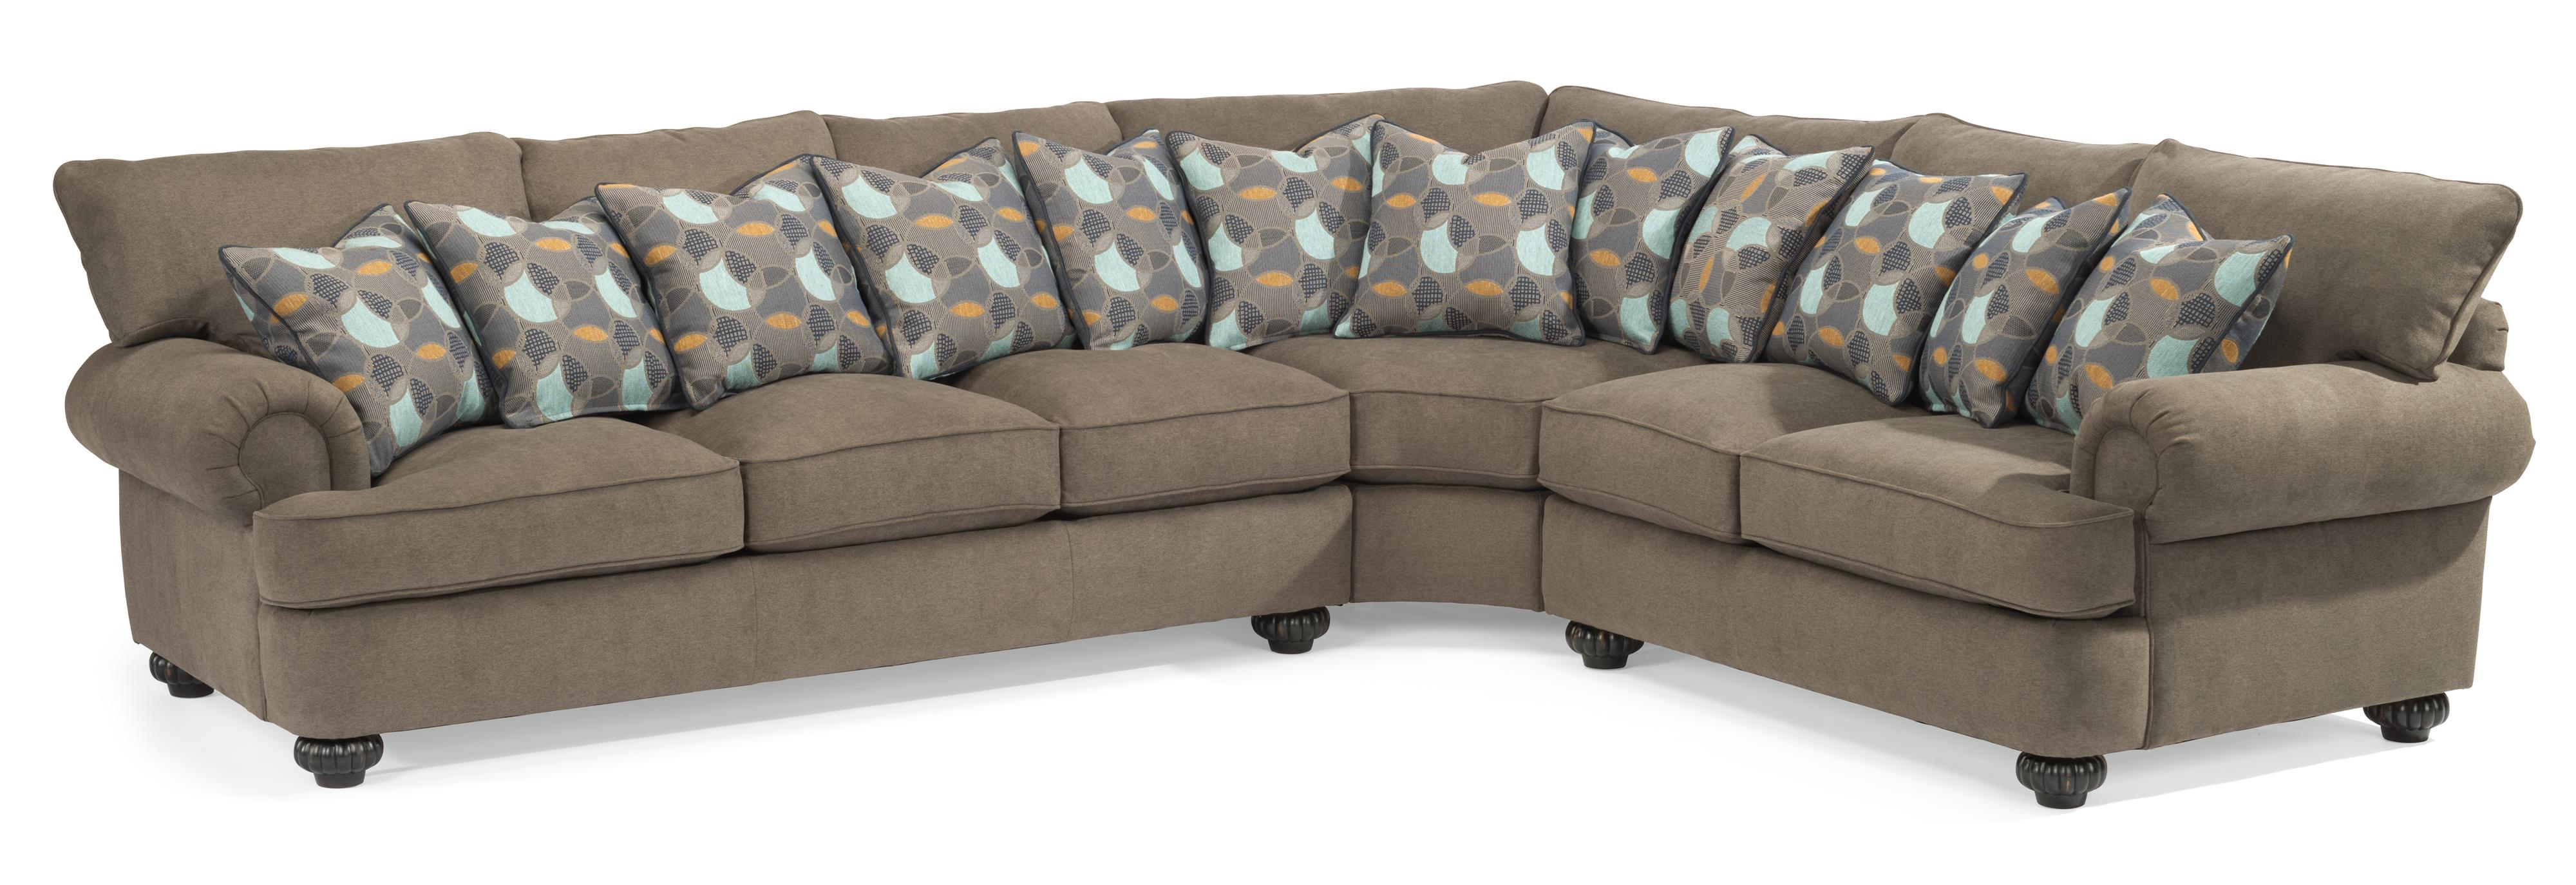 Flexsteel Patterson Three Piece Sectional Sofa With Rolled Arms Pertaining To Patterson Ii Arm Sofa Chairs (View 3 of 20)